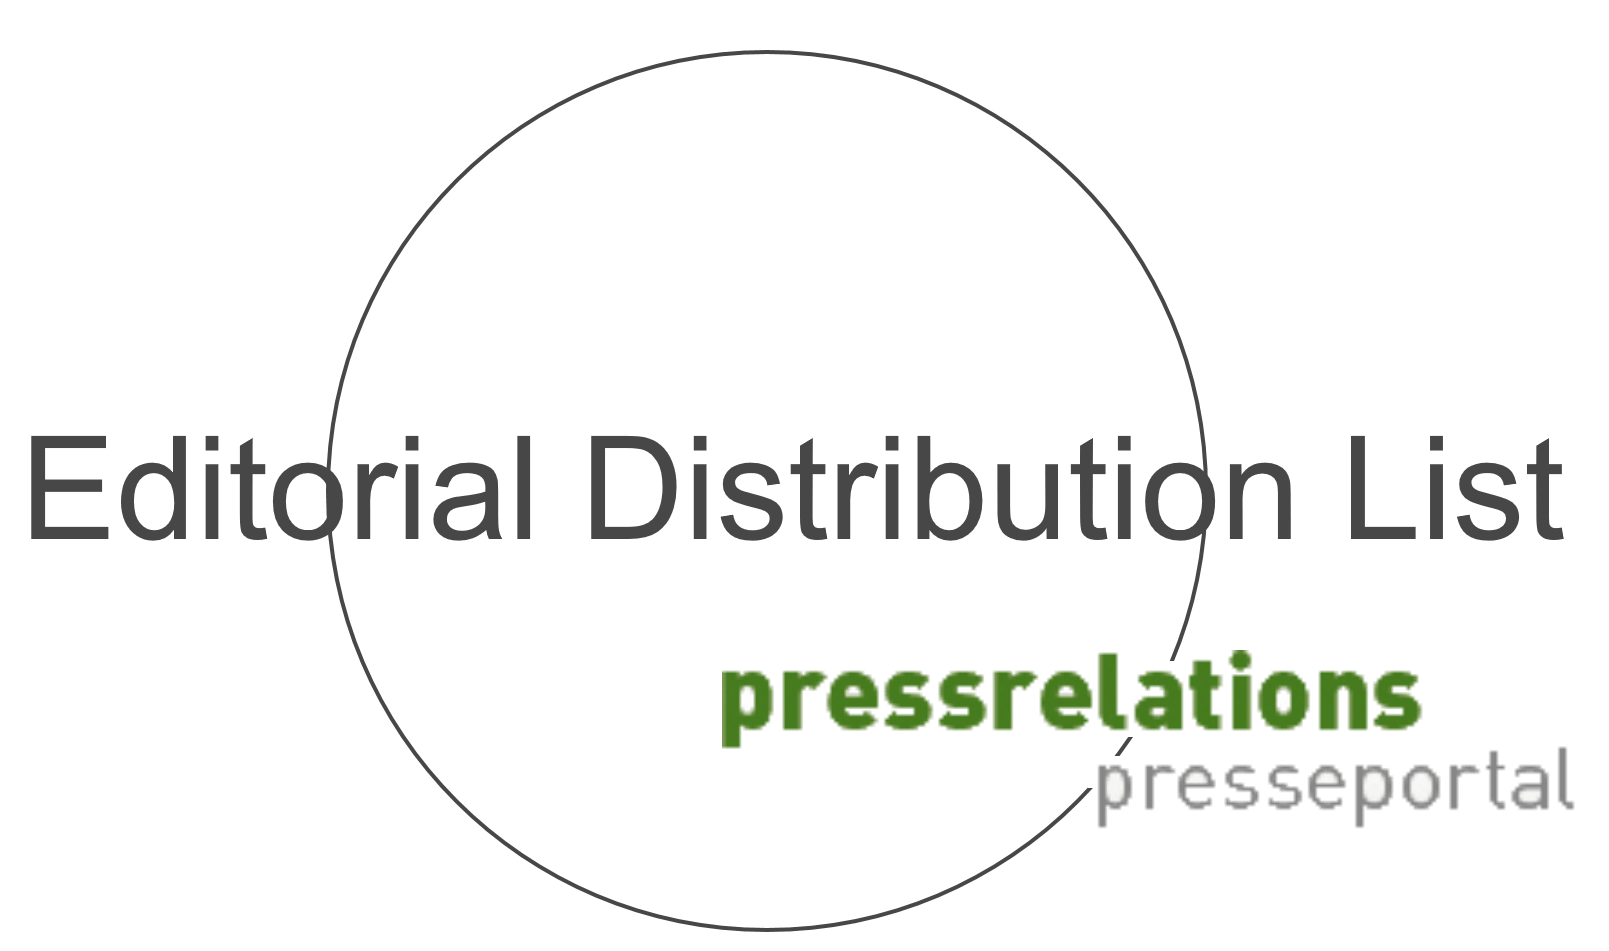 Editorial Distribution List